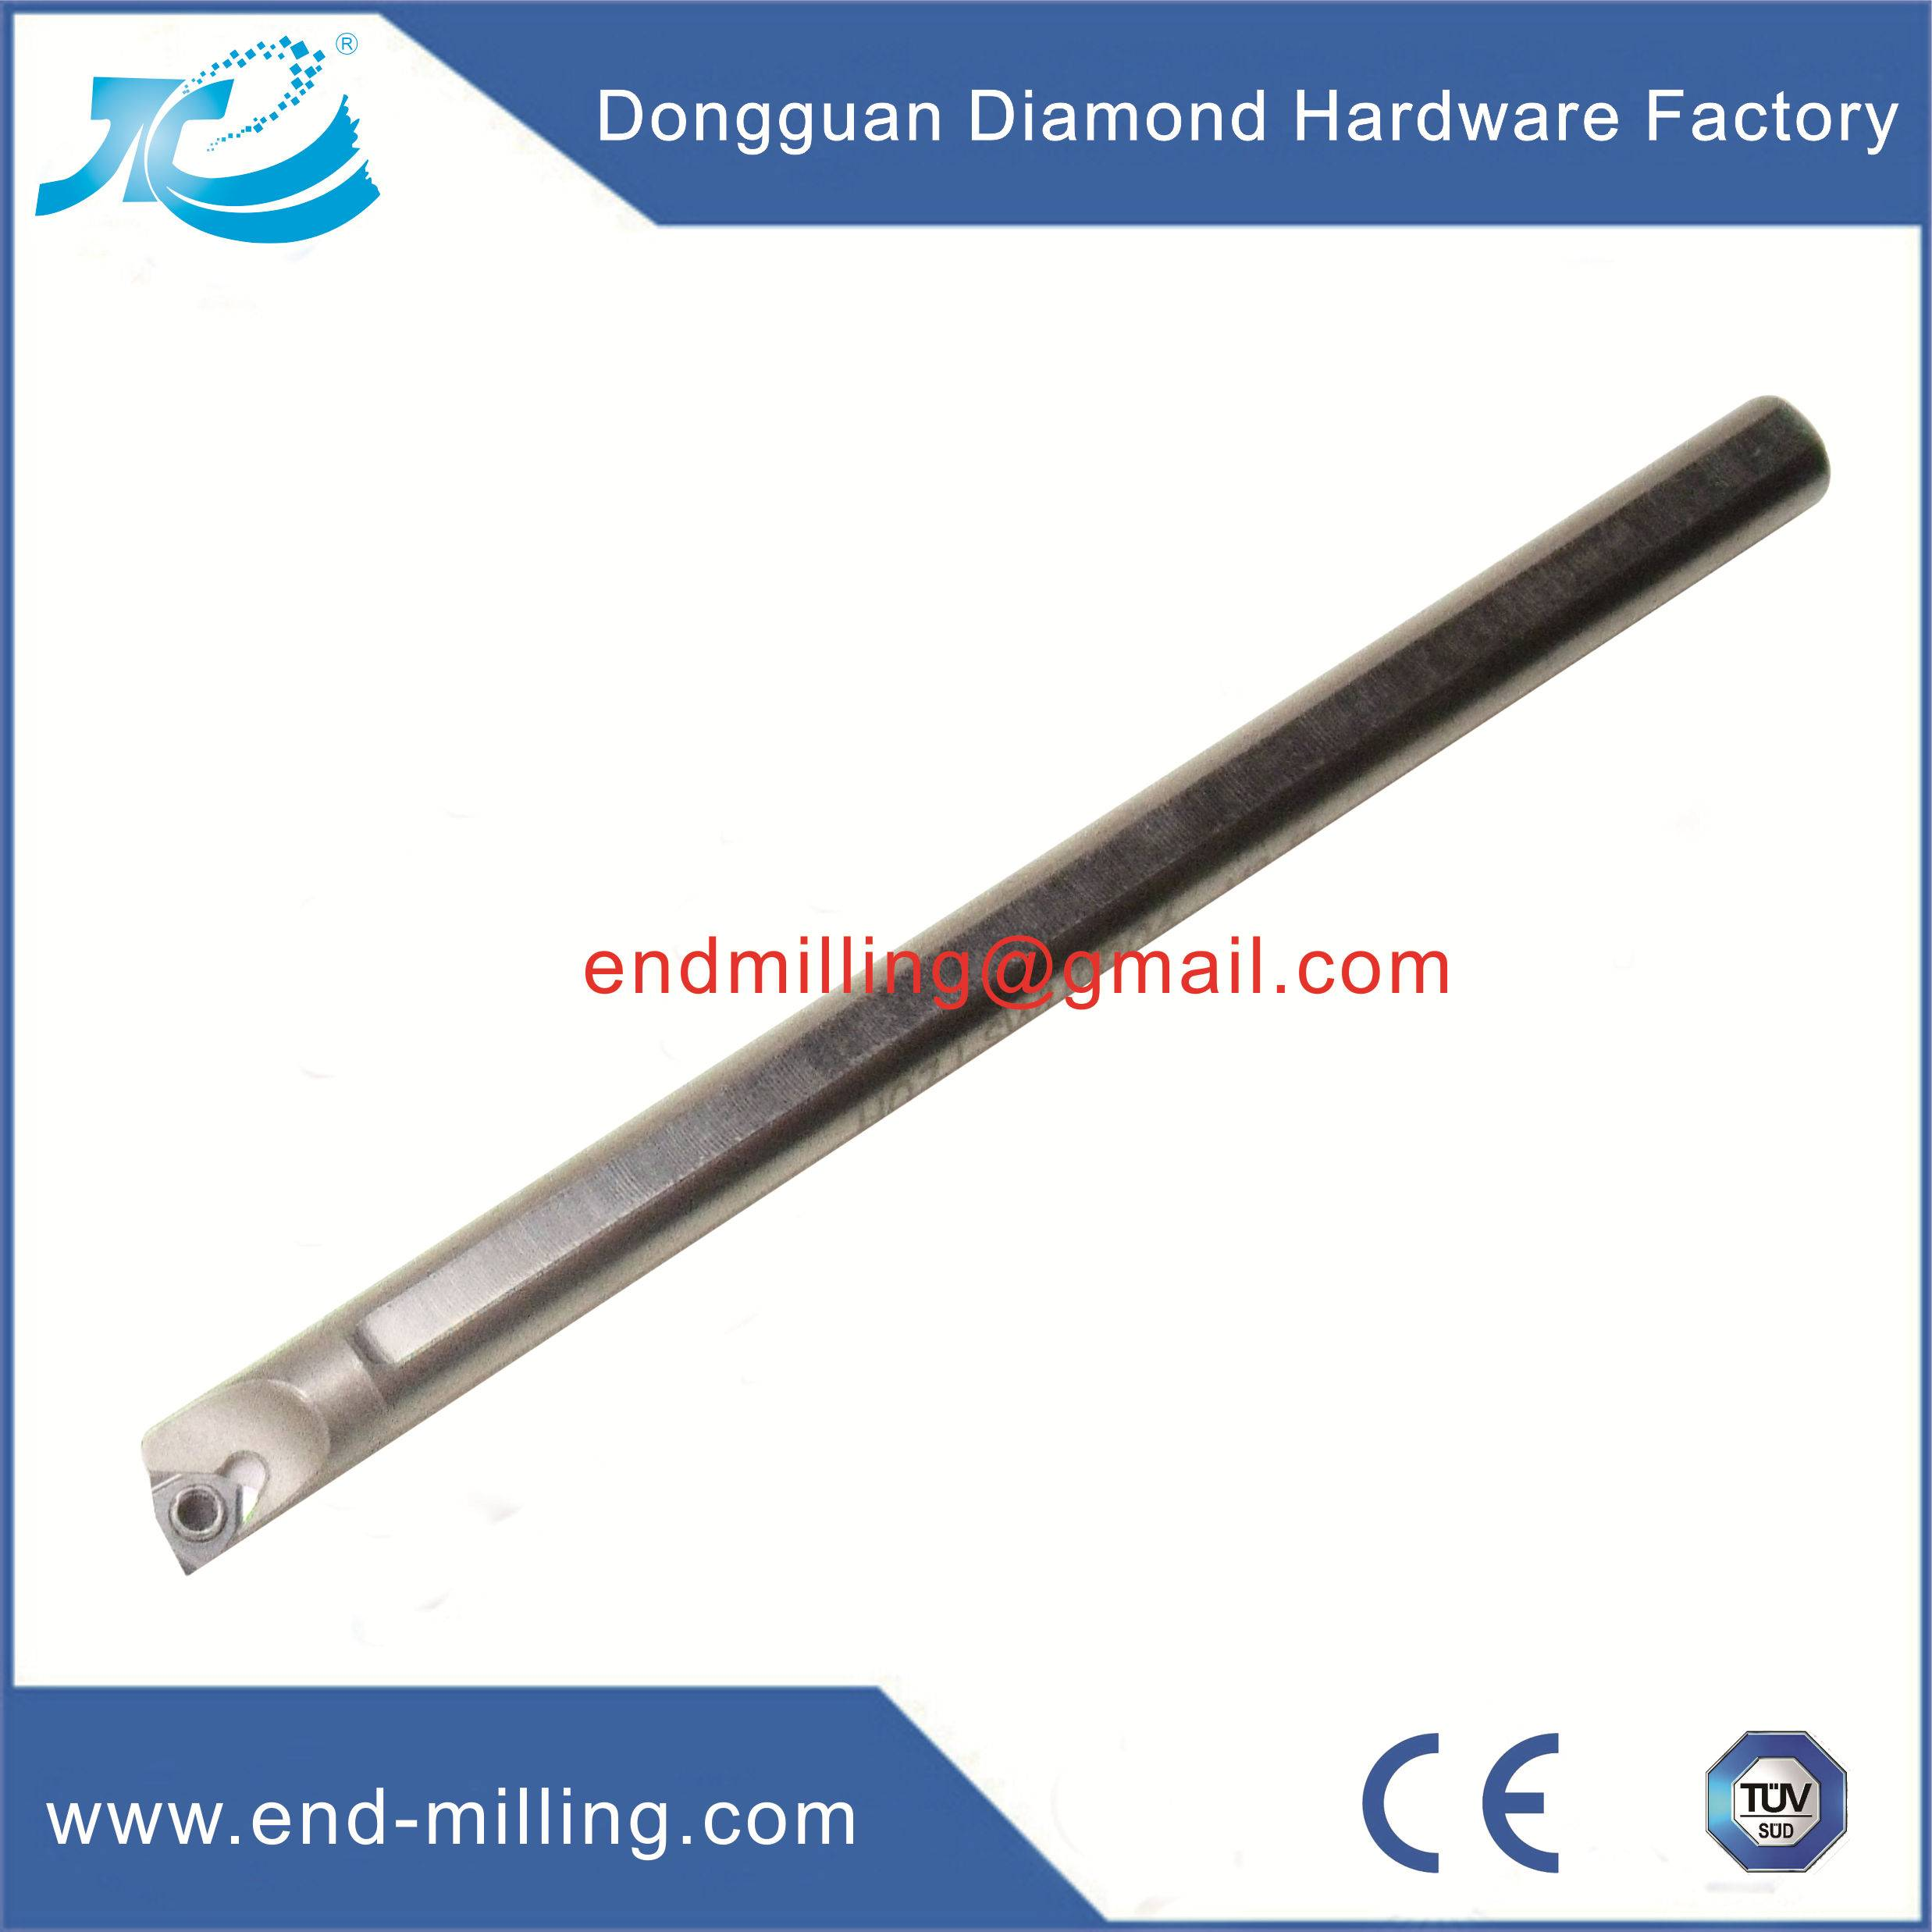 Solid Carbide Boring Bars